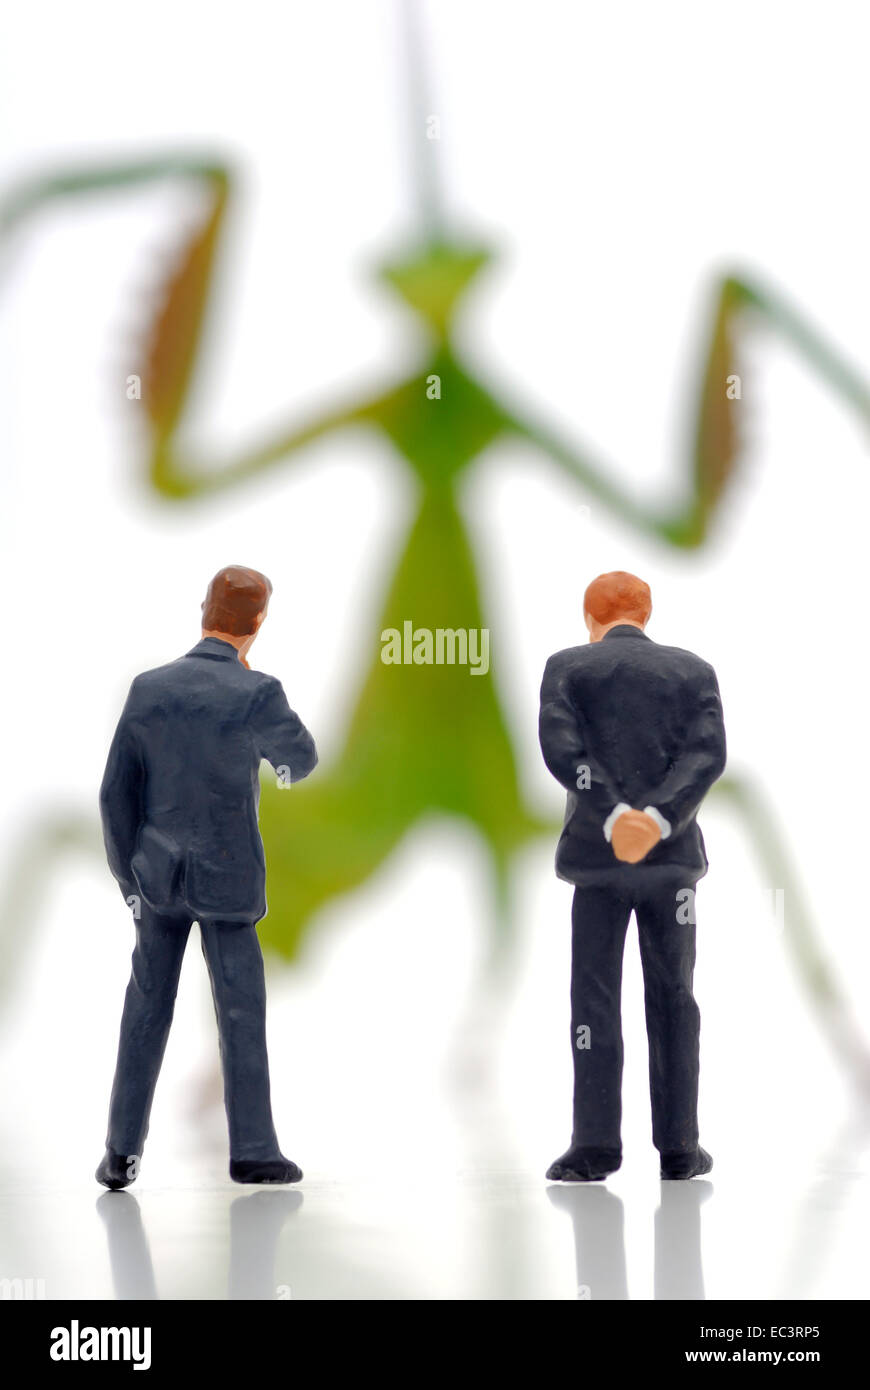 Locust and businessmen, hedge fund - Stock Image